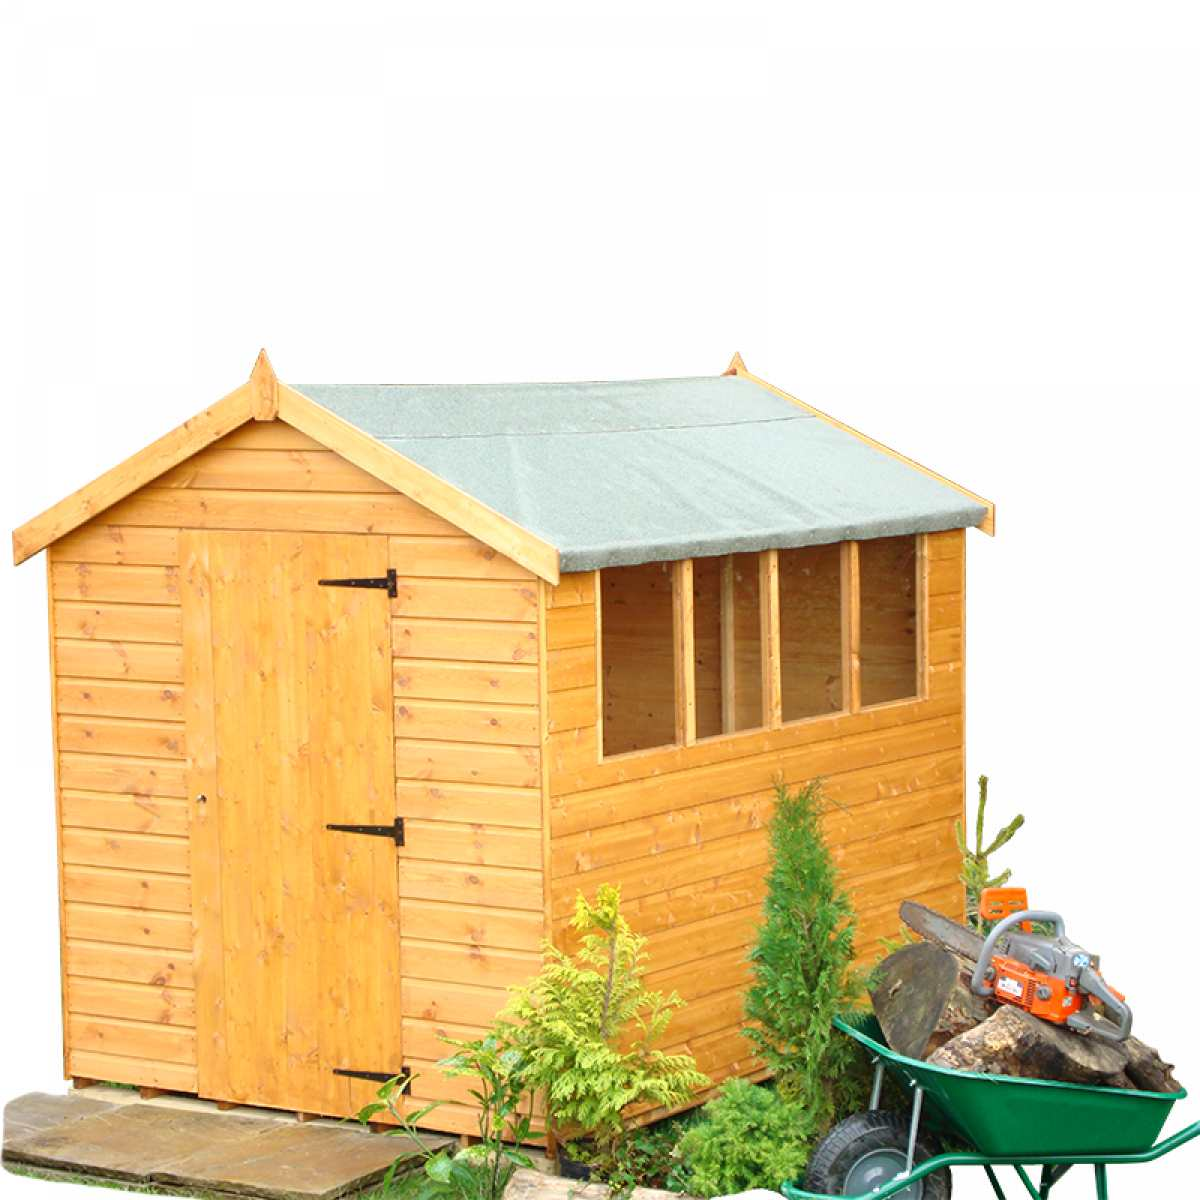 apex shed websterstimber 800px by Image by Websters Timber